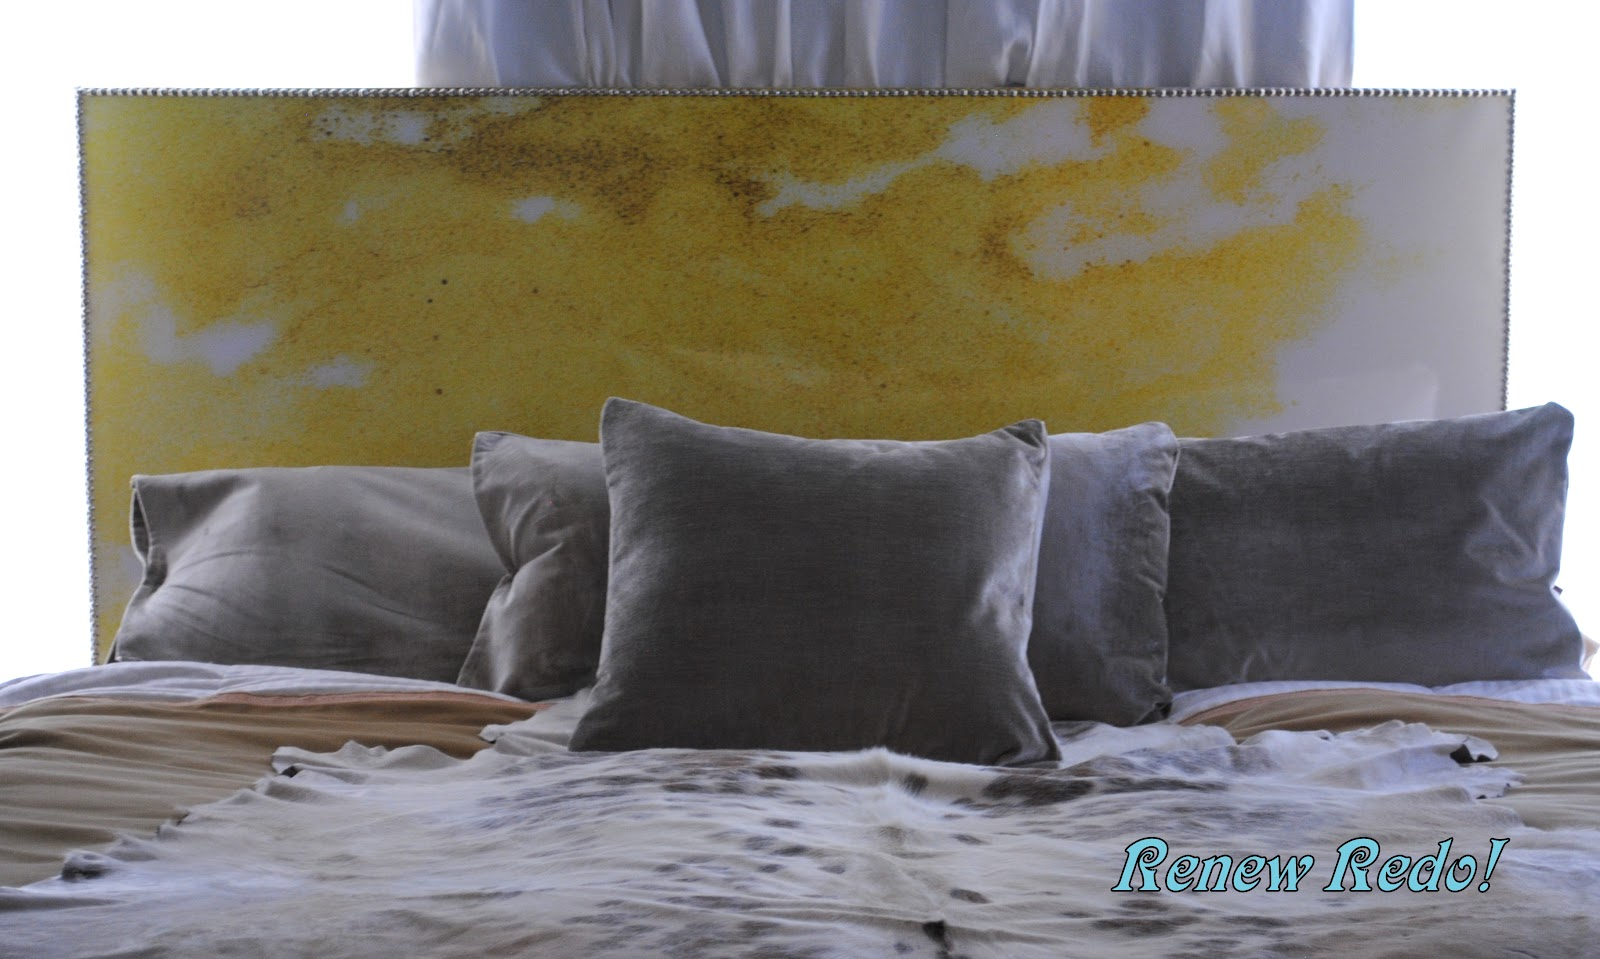 pottery headboards ideas upholstered hardware wall bench on behind barn cushion quilt vintage hanging fabric french master bedroom linen restoration headboard bedding